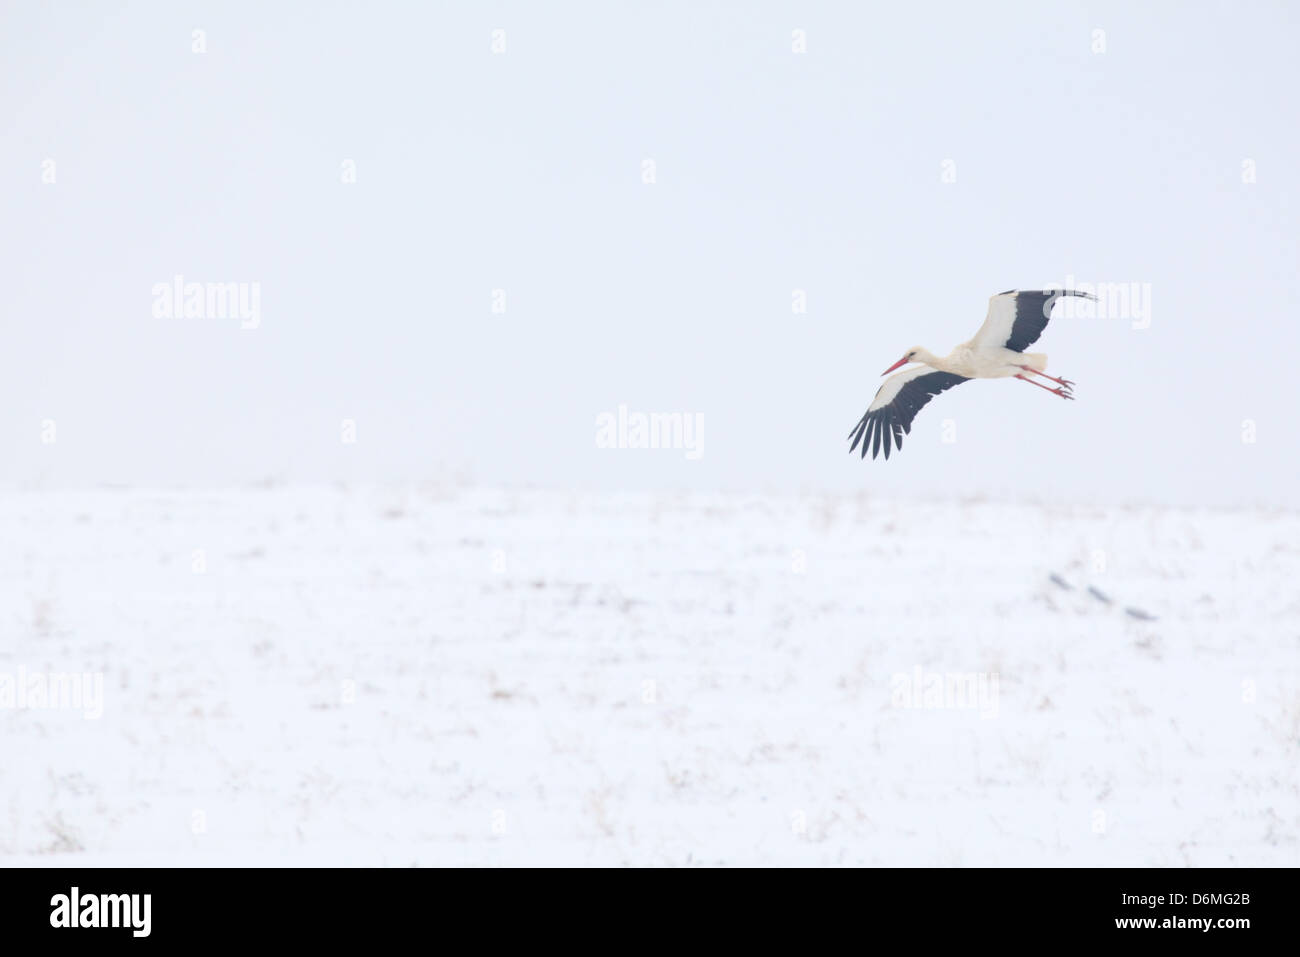 White Stork (Ciconia ciconia) flying over snowy field in spring(April). Europe, Estonia Stock Photo